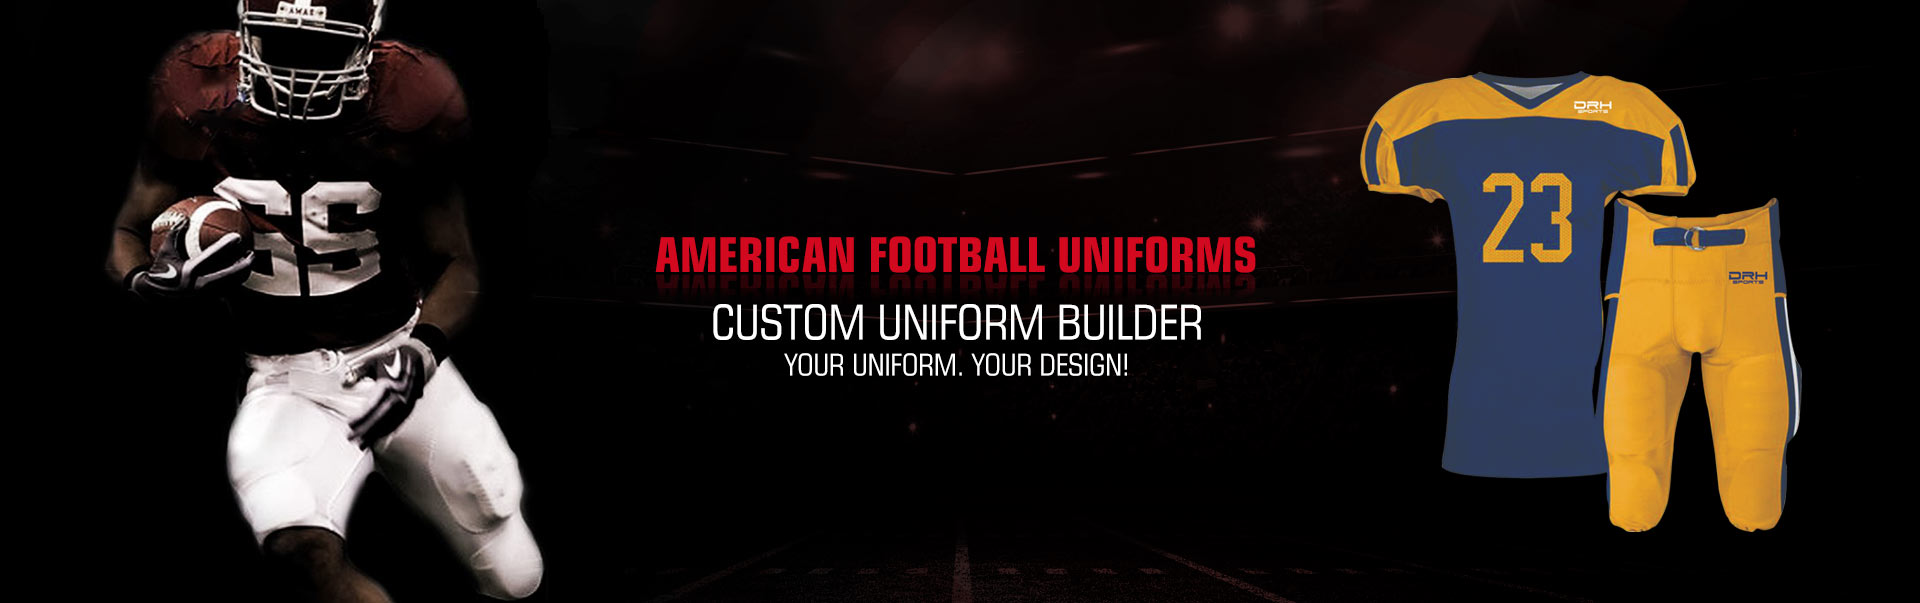 American Football Uniform Wholesaler, Suppliers in Kursk